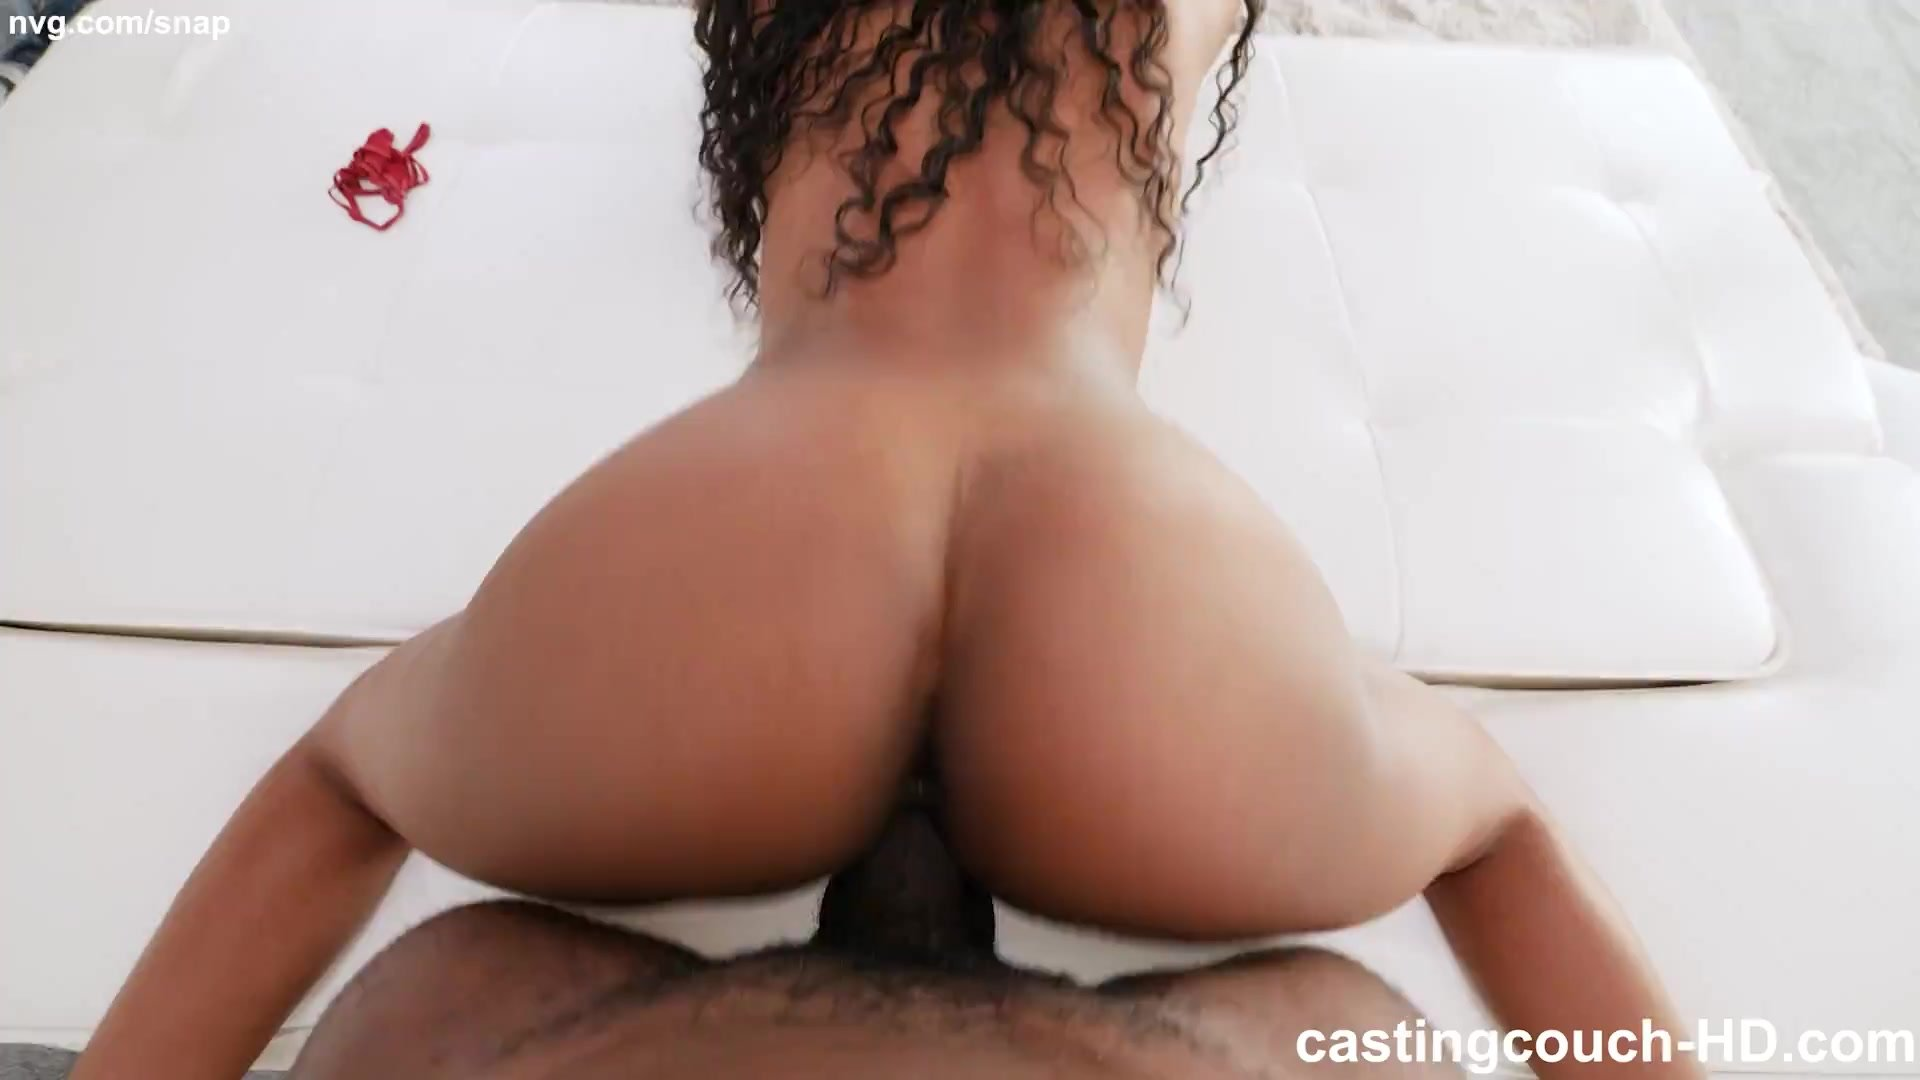 Nice ass/doggystyle/into butt girl get to